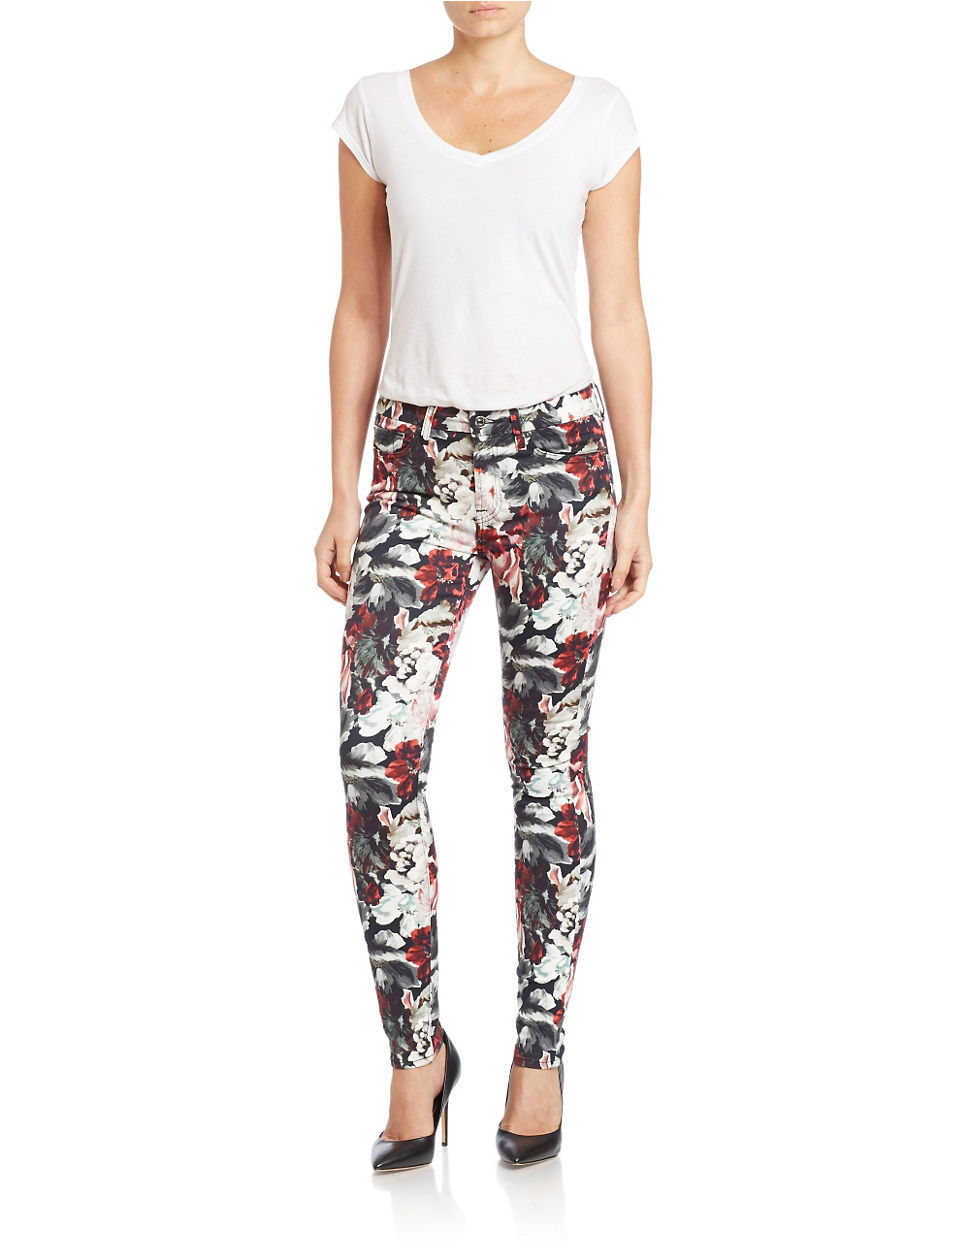 7 for all mankind Floral-print Mid-rise Skinny Jeans | Lyst